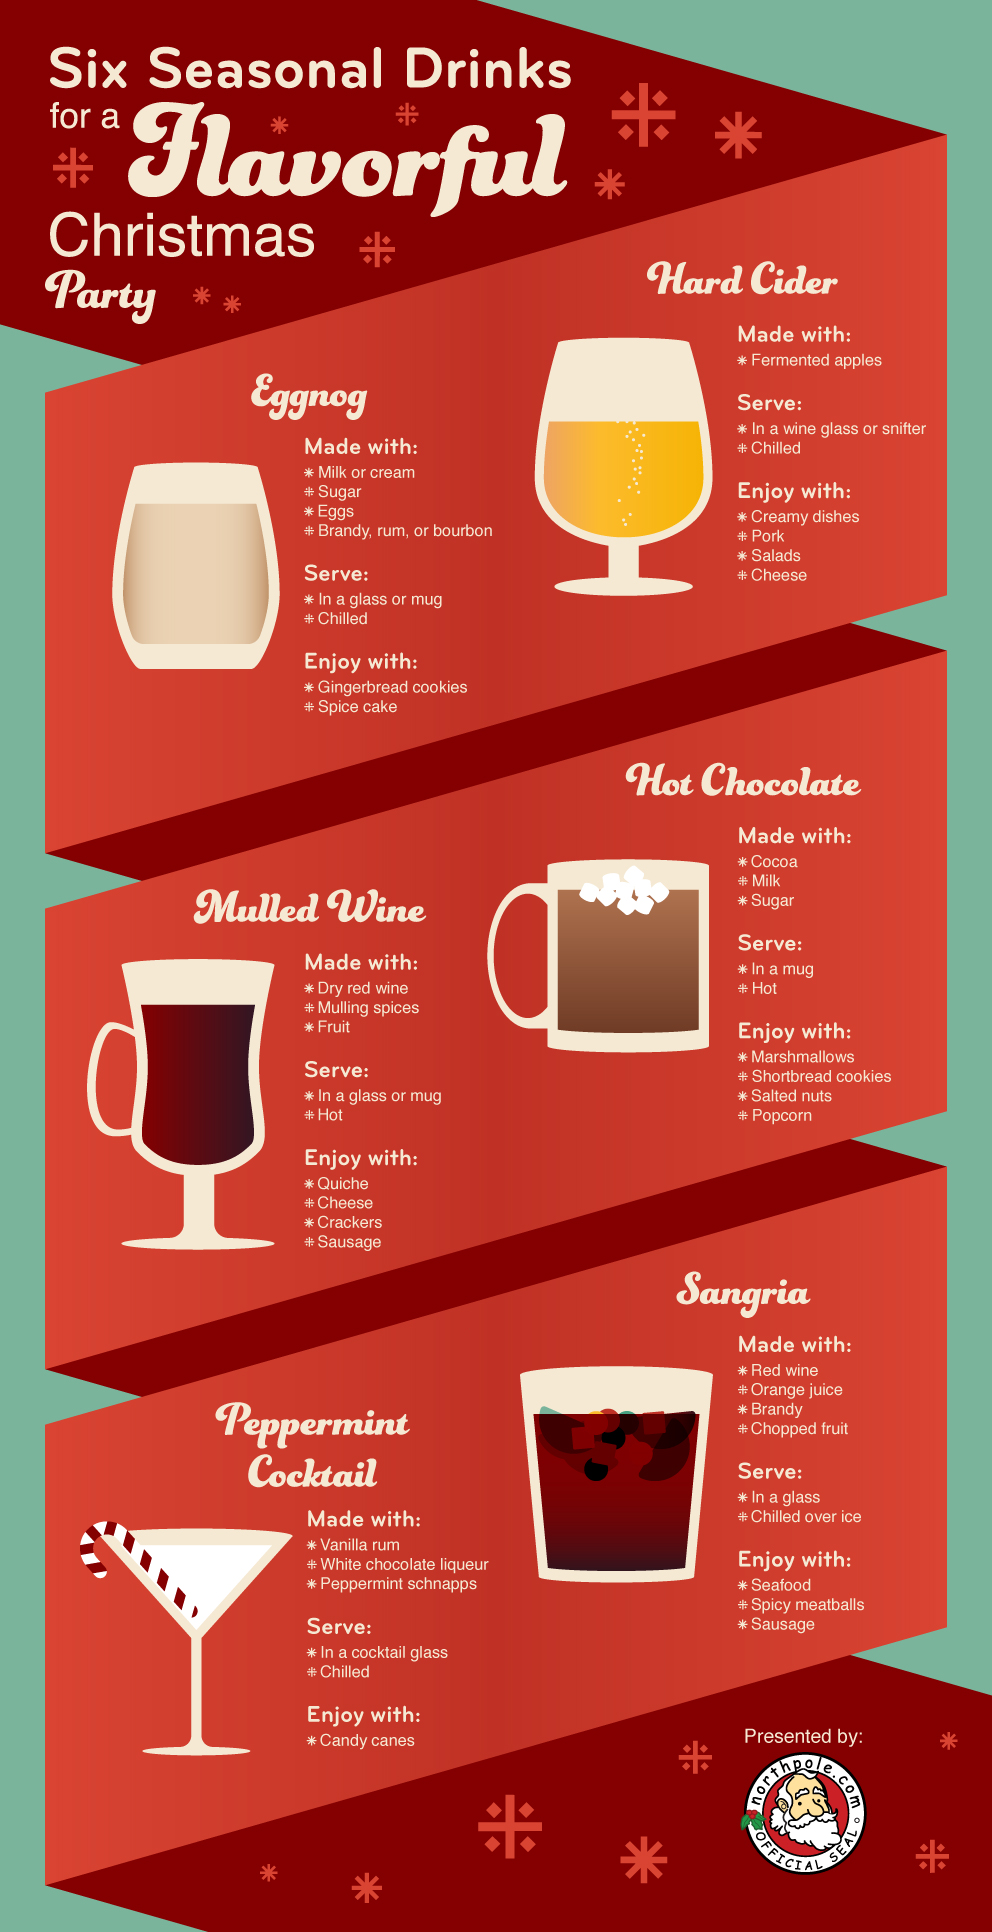 6 Seasonal Drinks for a Flavorpul Christmas Party